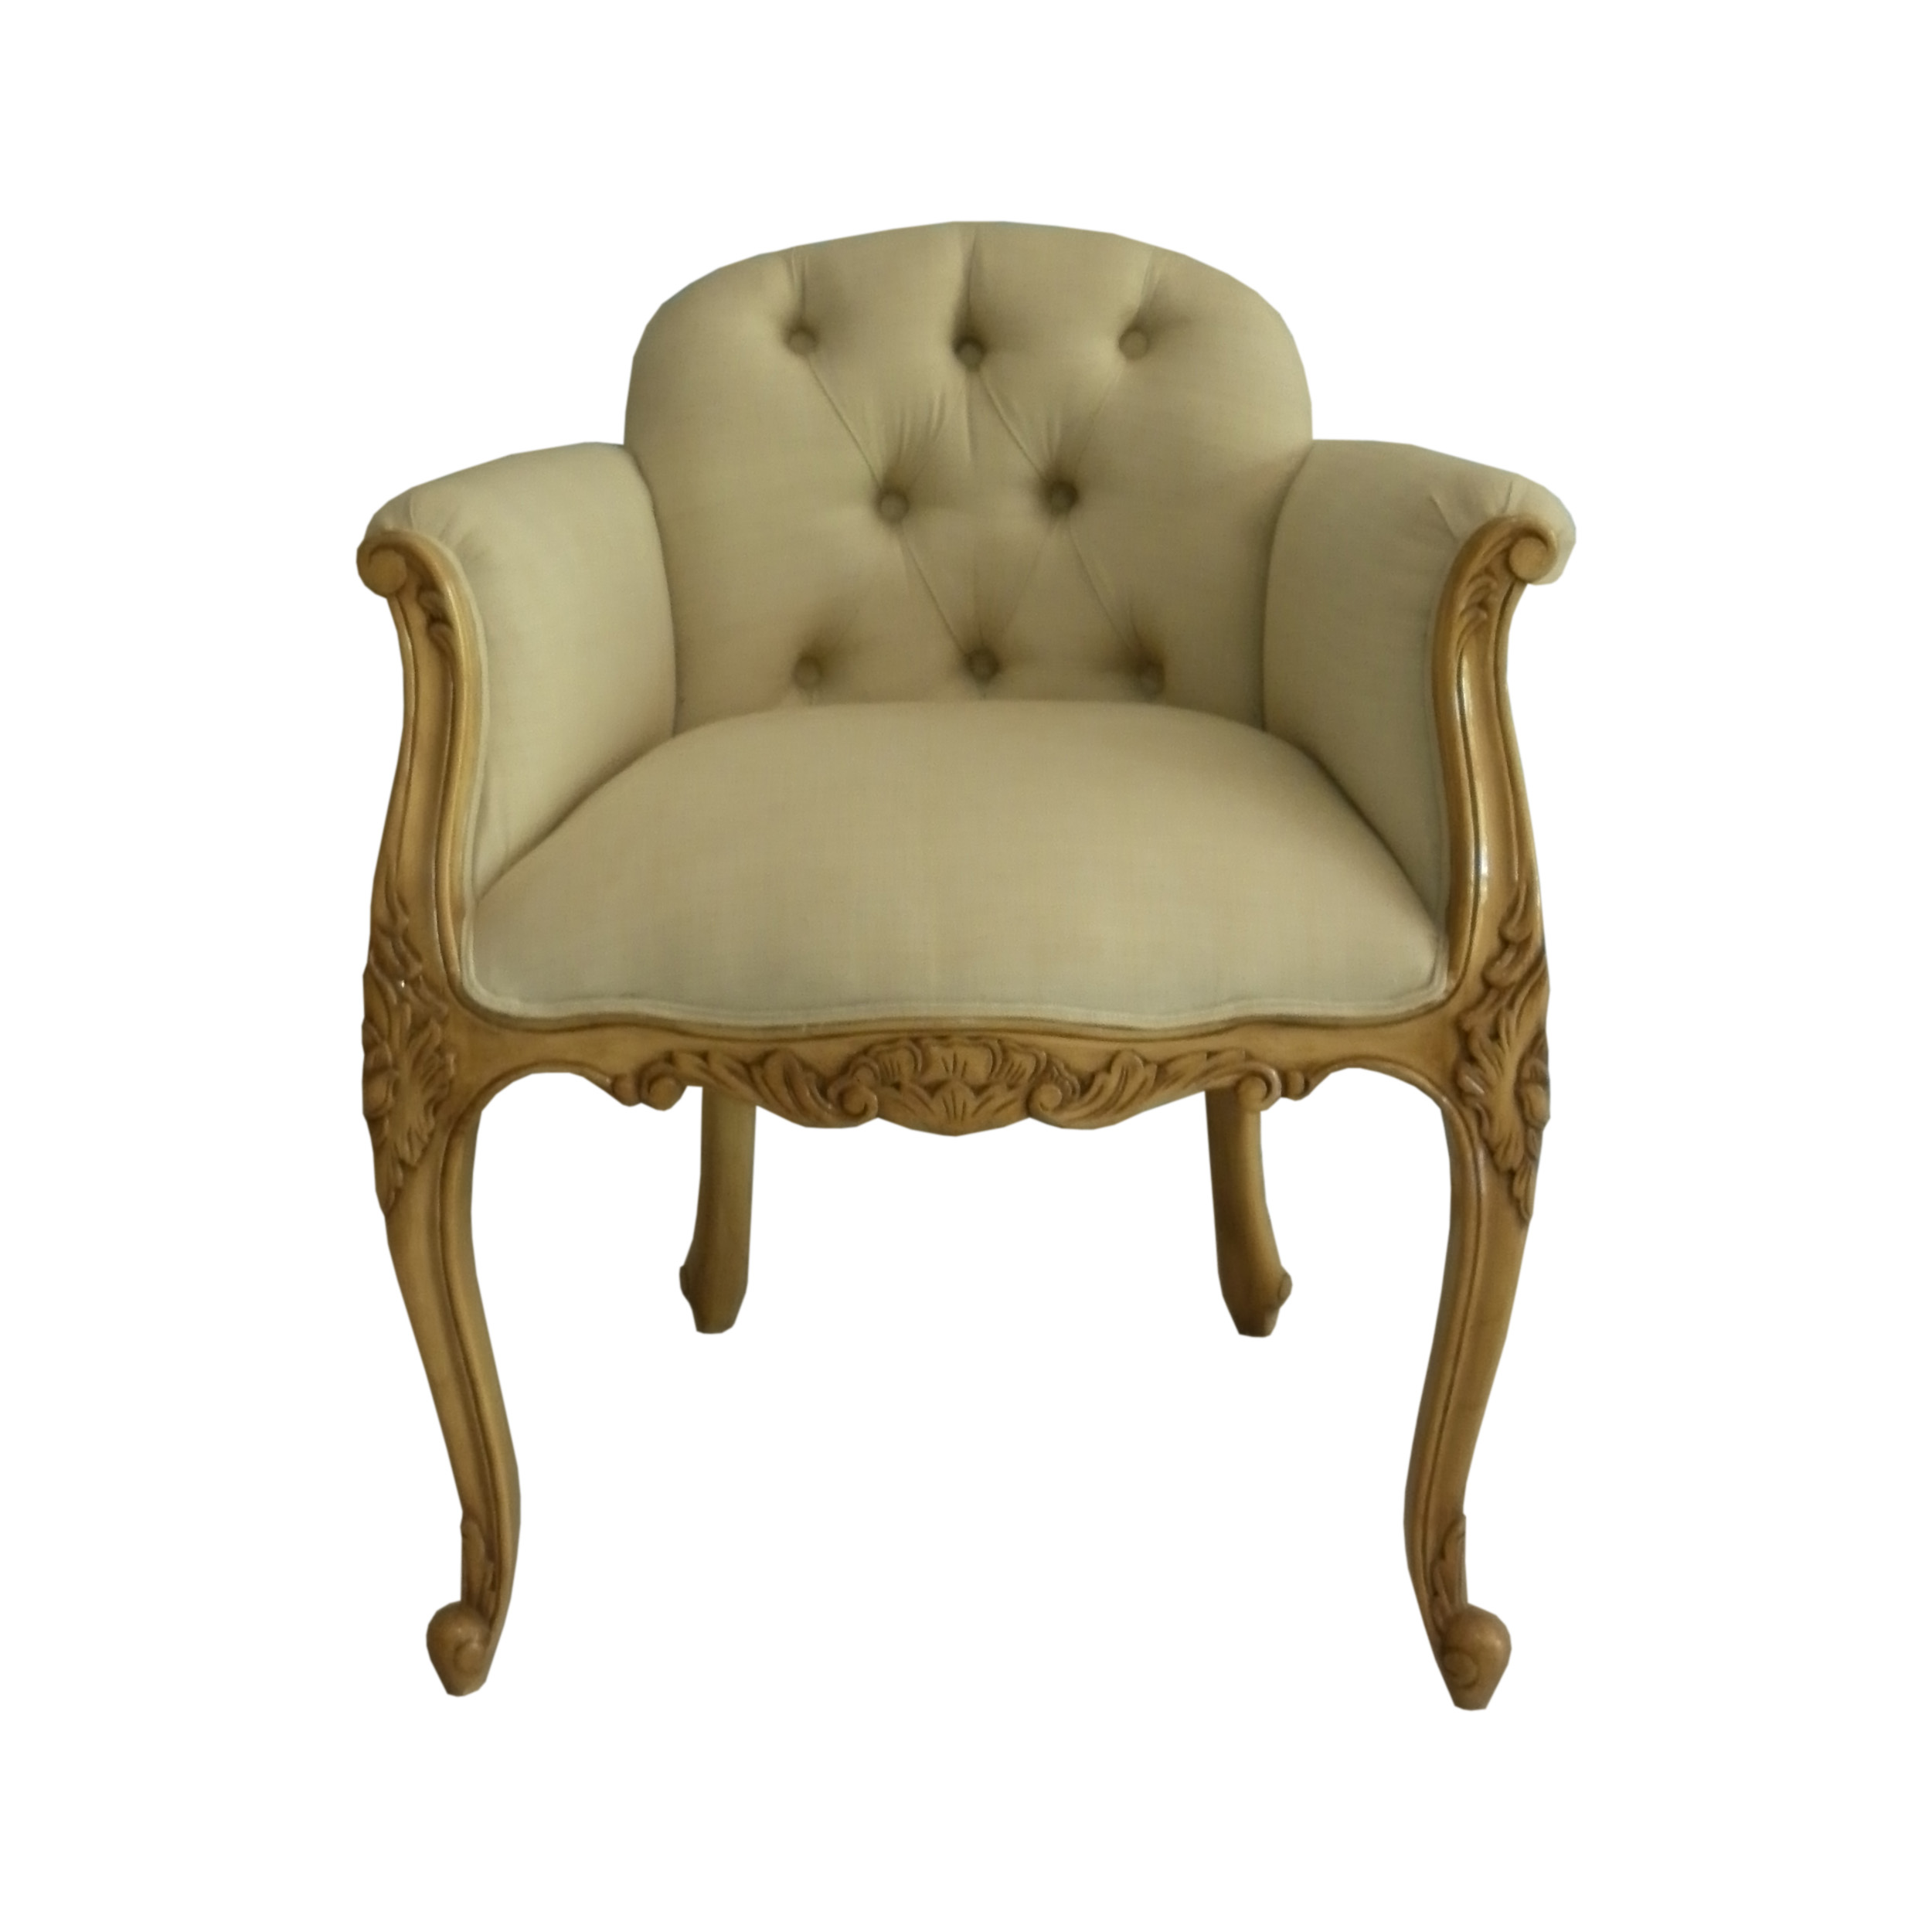 Indonesia Furniture French Furniture Louis Upholstered Low Back